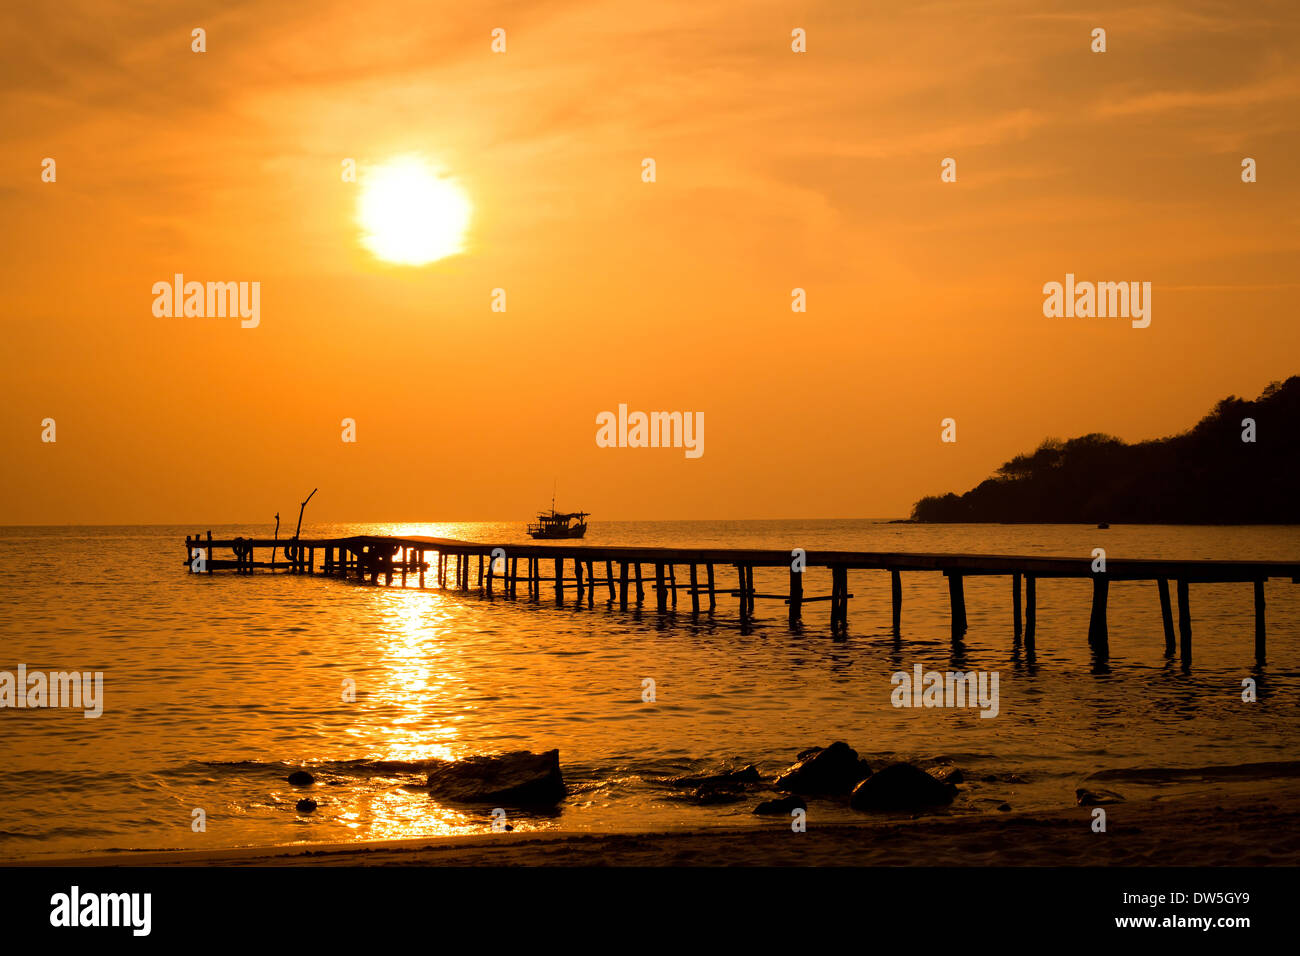 Tropical Beach at sunset Photo Stock